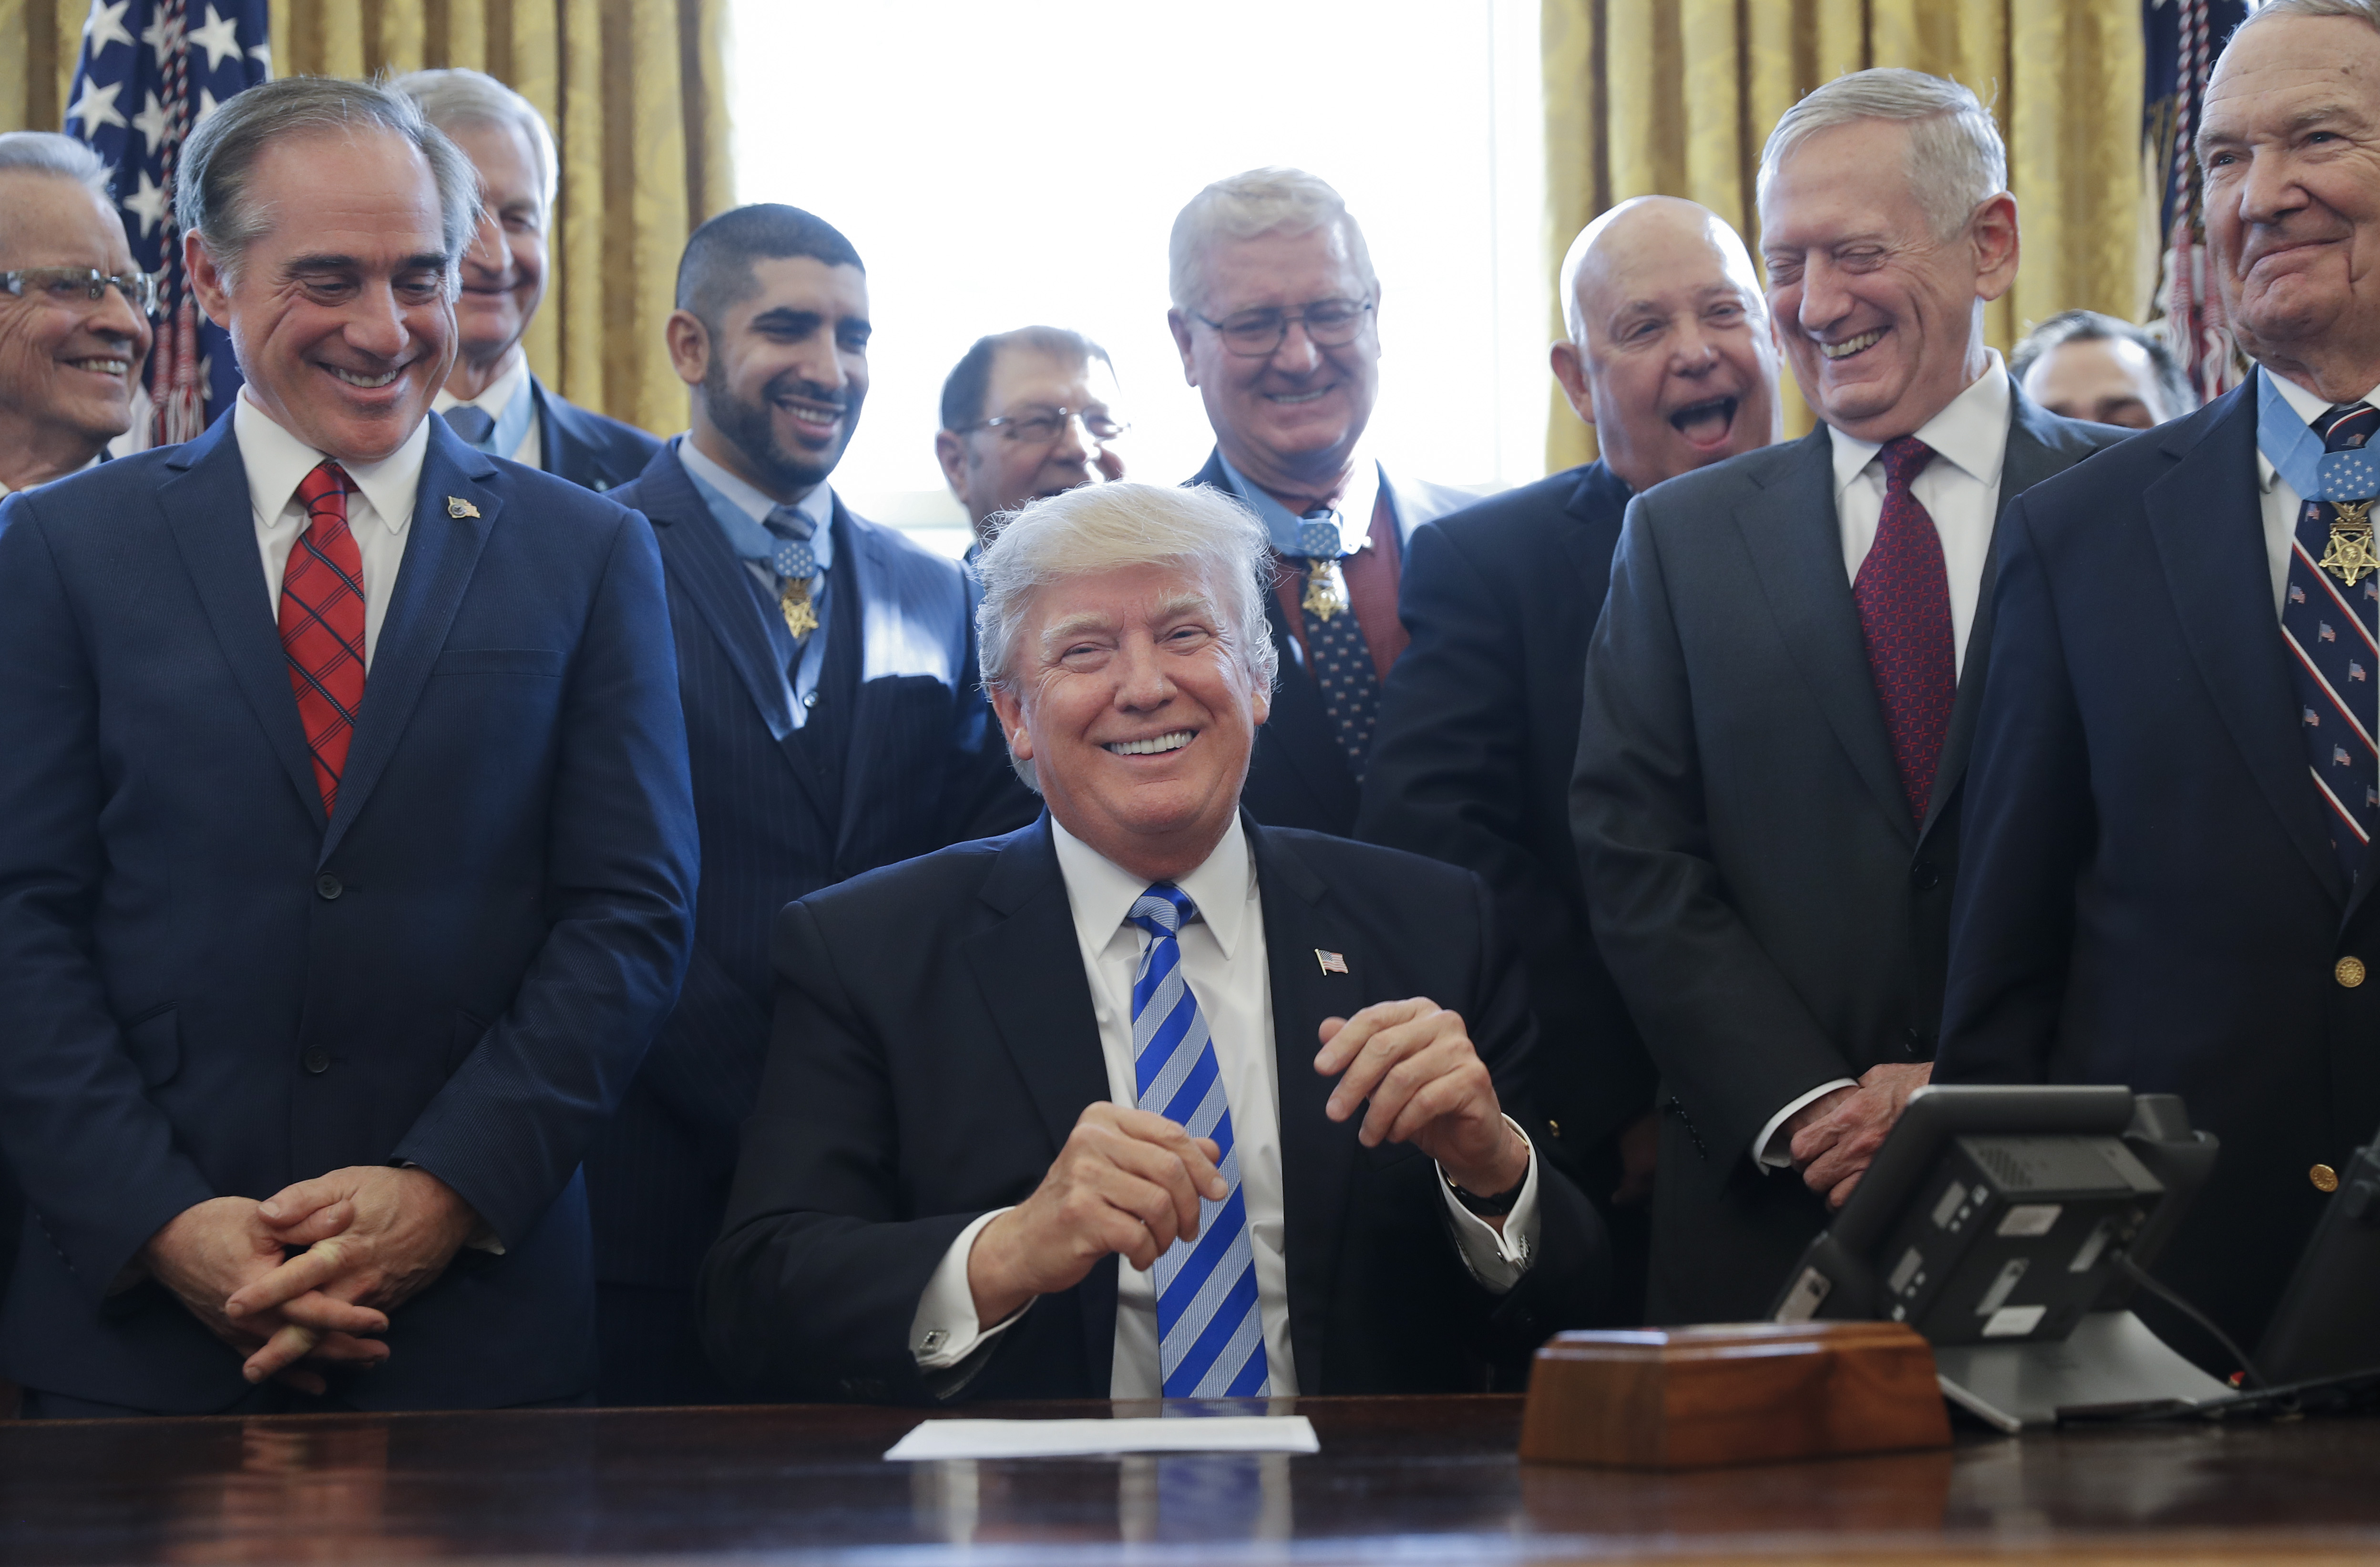 President Donald Trump smiles during a ceremony with Medal of Honor recipients at the White House on March 24, 2017. At left is then-Secretary of Veterans Affairs David Shulkin, whose new book details chaos and confusion within the administration before his firing in 2017. (Pablo Martinez Monsivais/AP)